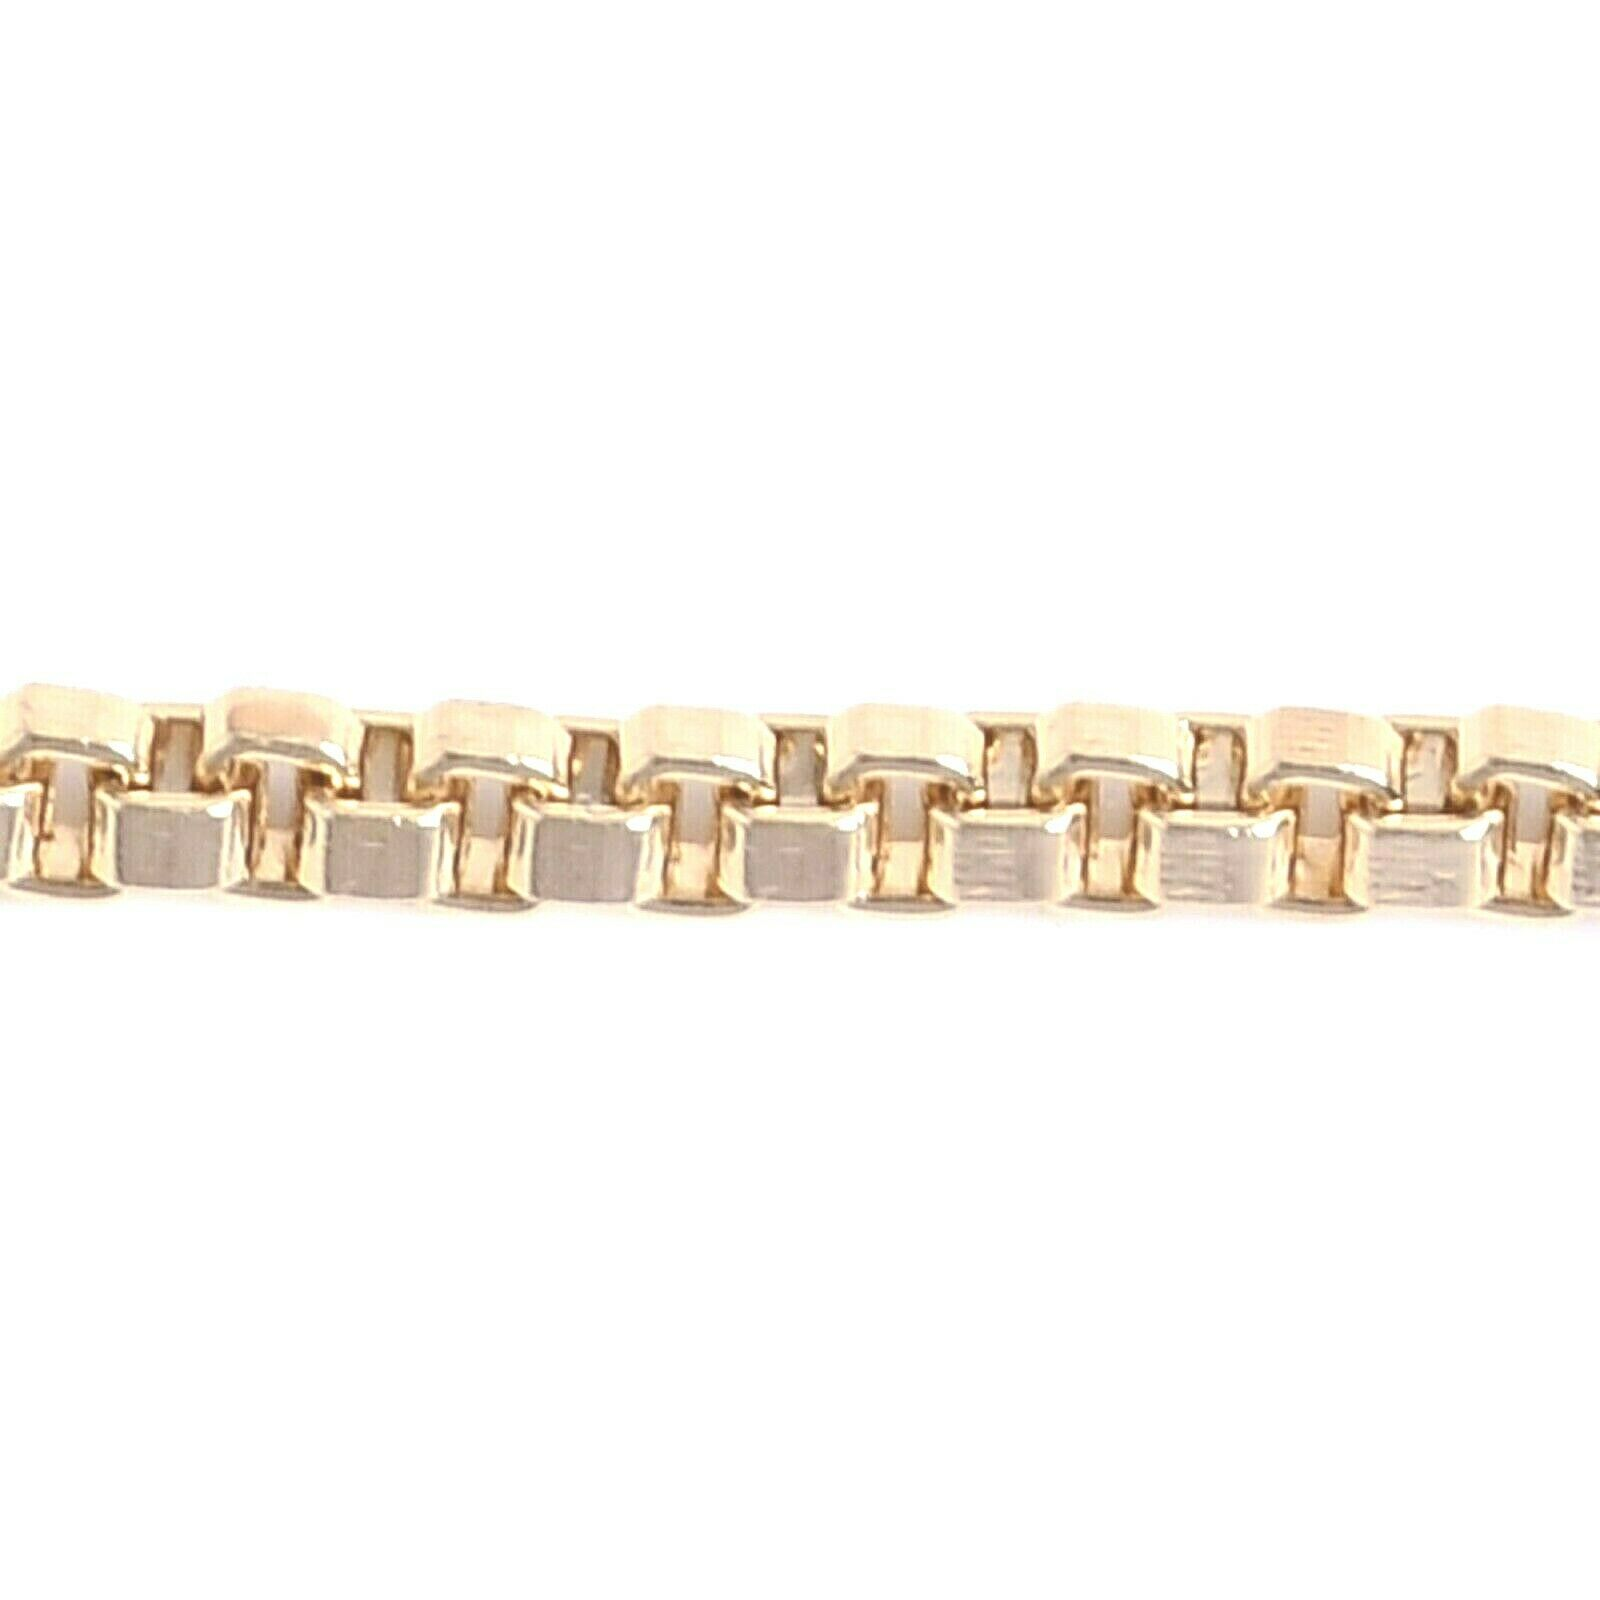 Cable Oval Textured Gold Aluminum Chain 9x6mm non tarnish Jewelry Making crafts